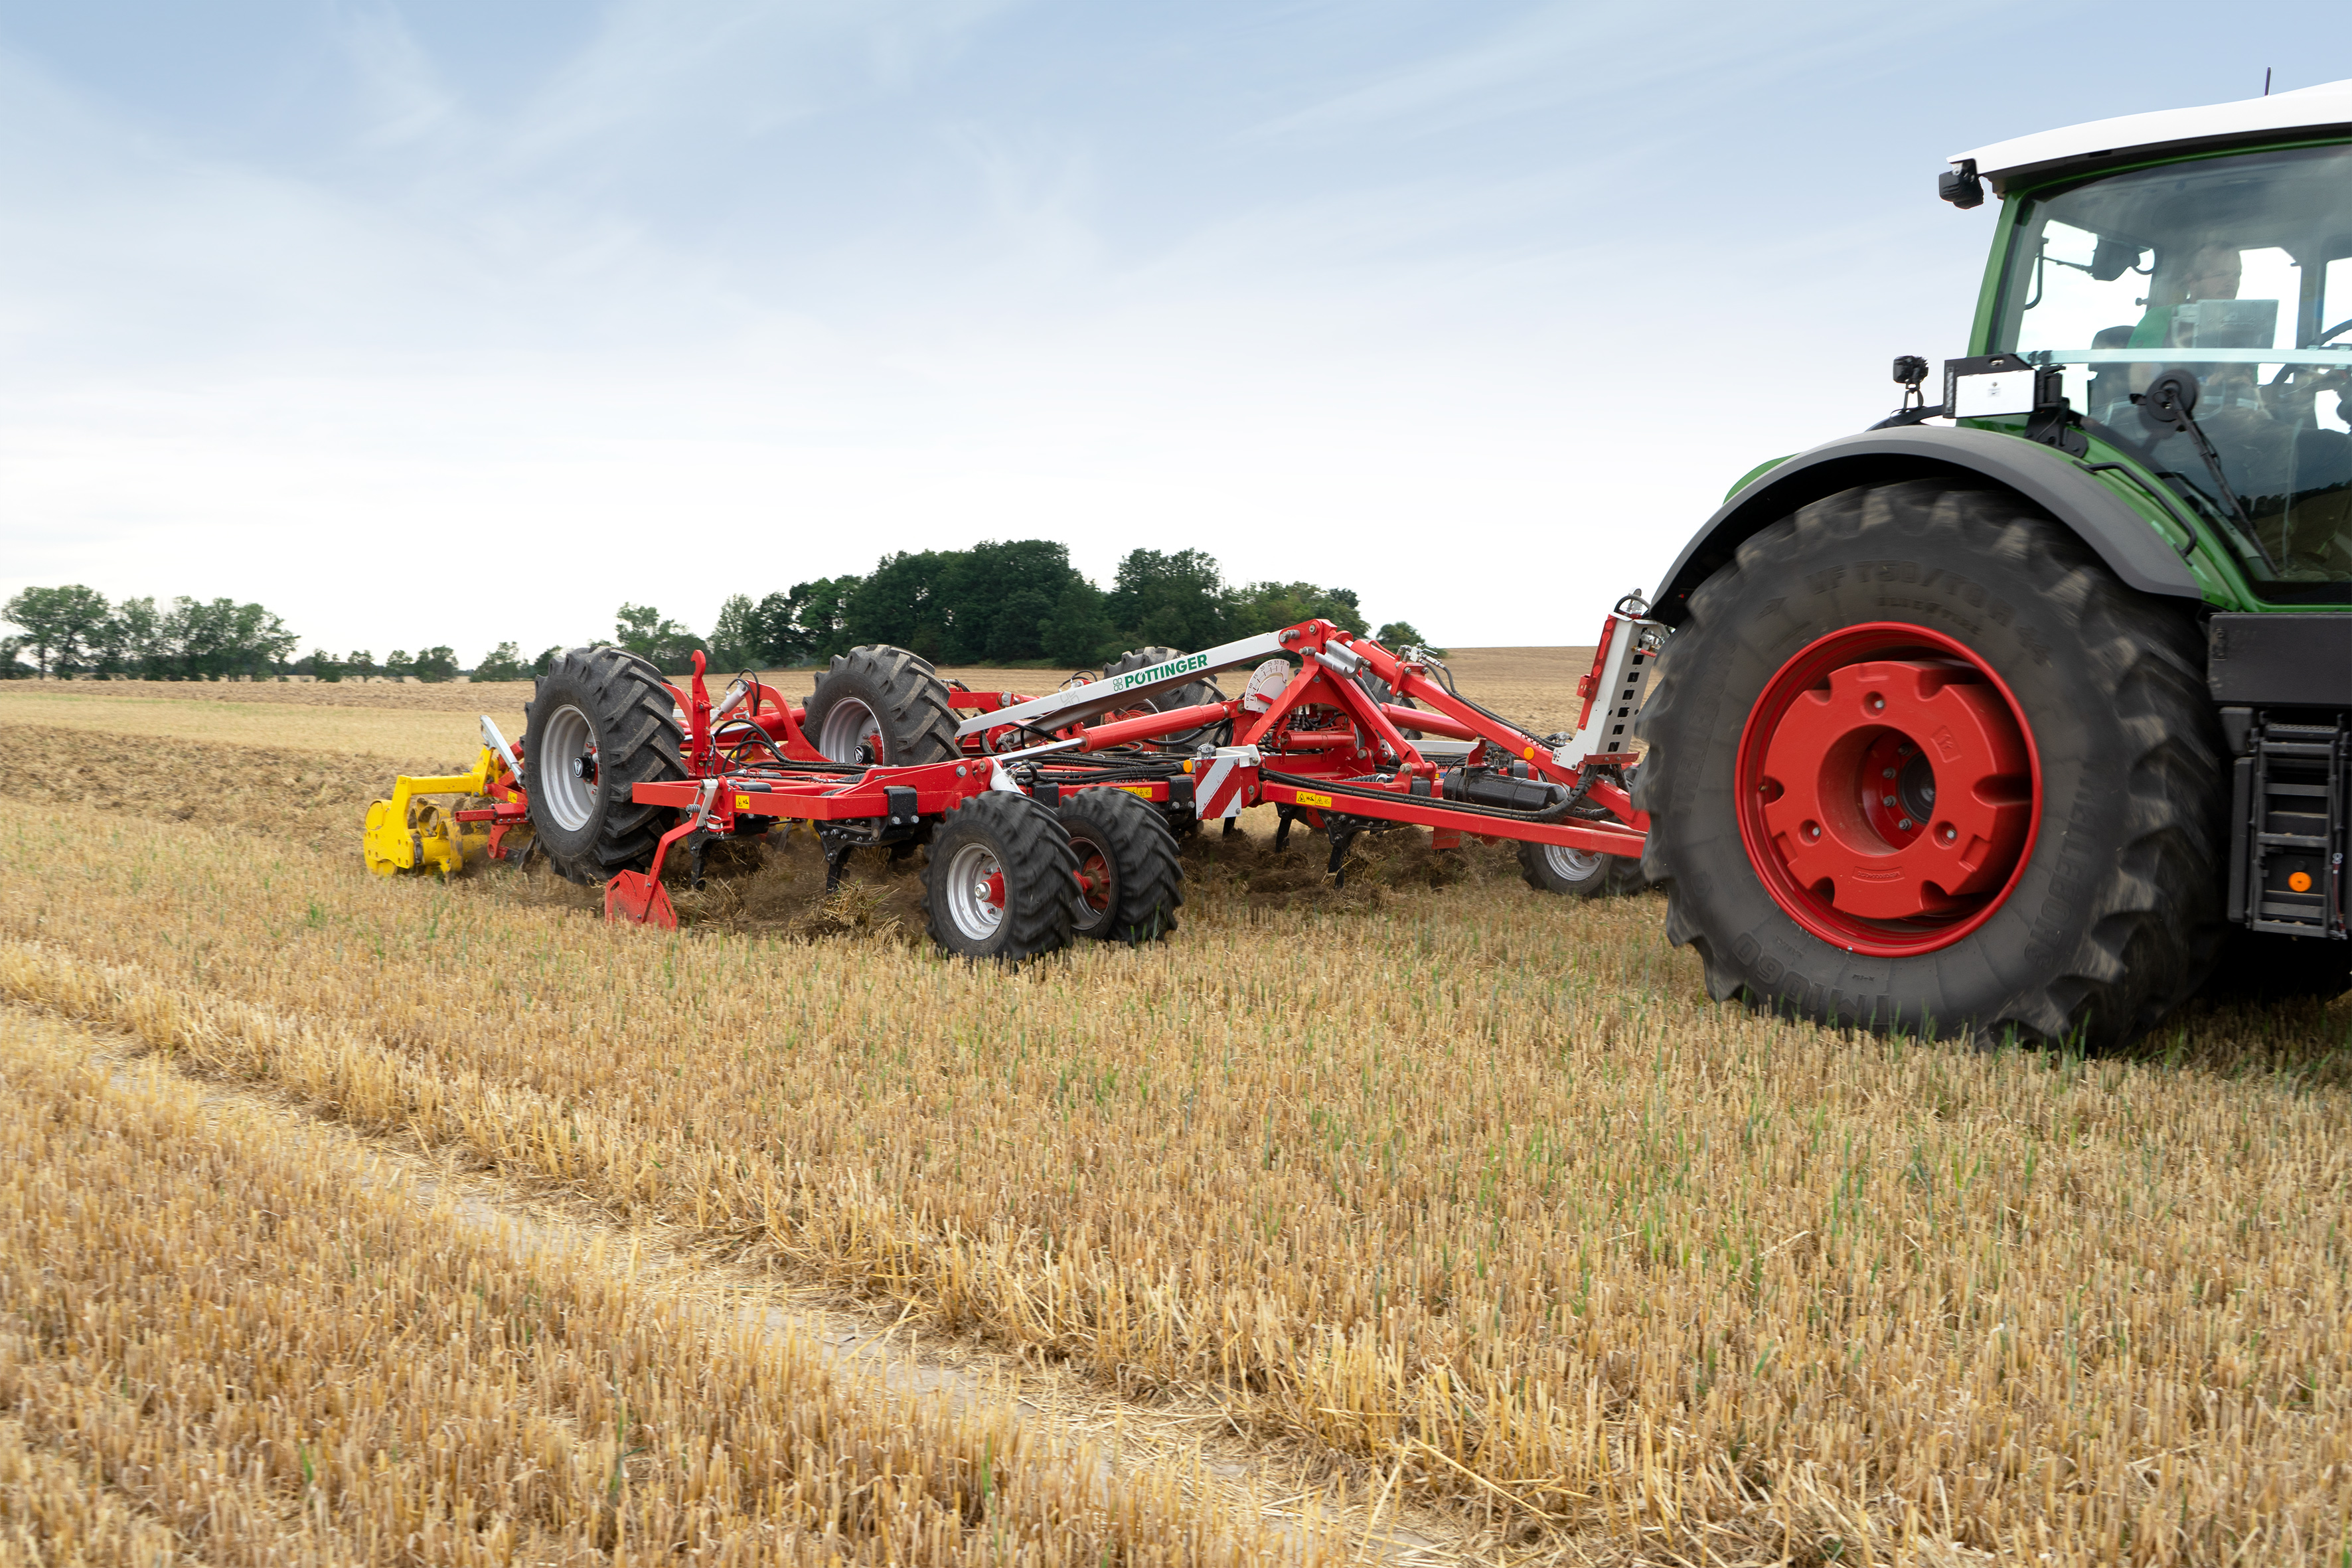 The TERRIA 6030 for the best results in stubble cultivation